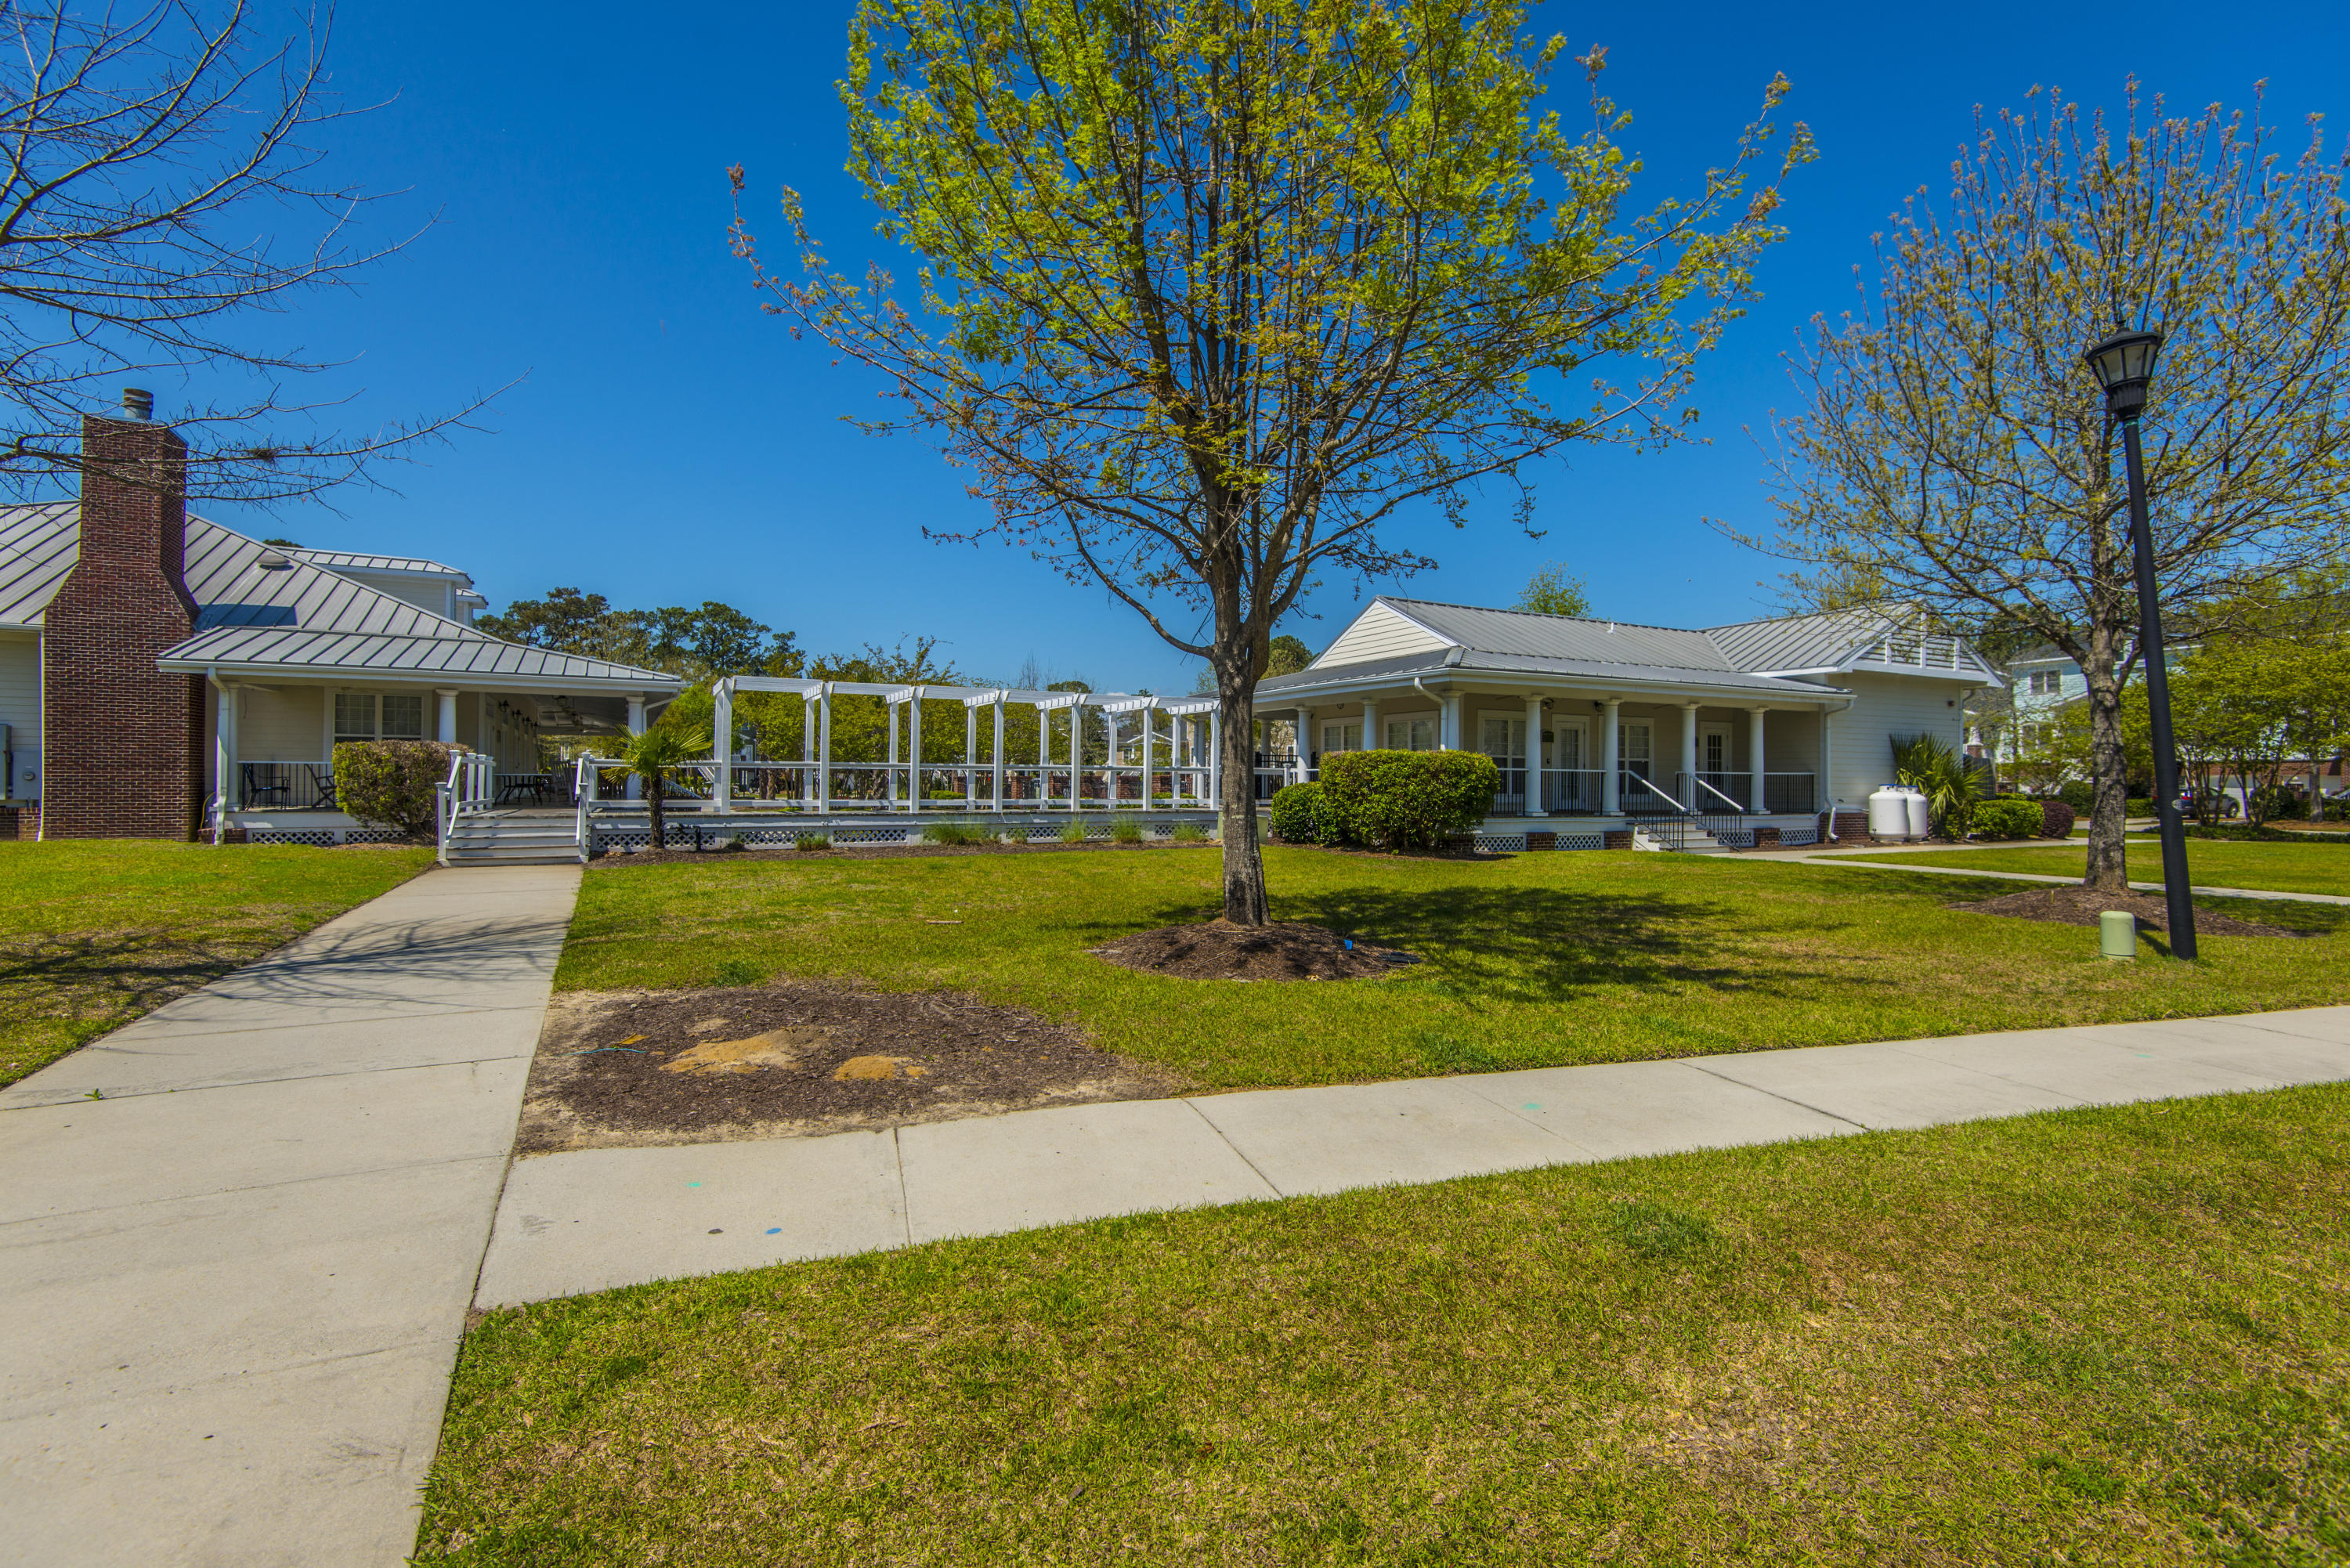 Etiwan Pointe Homes For Sale - 212 Etiwan Pointe, Mount Pleasant, SC - 37